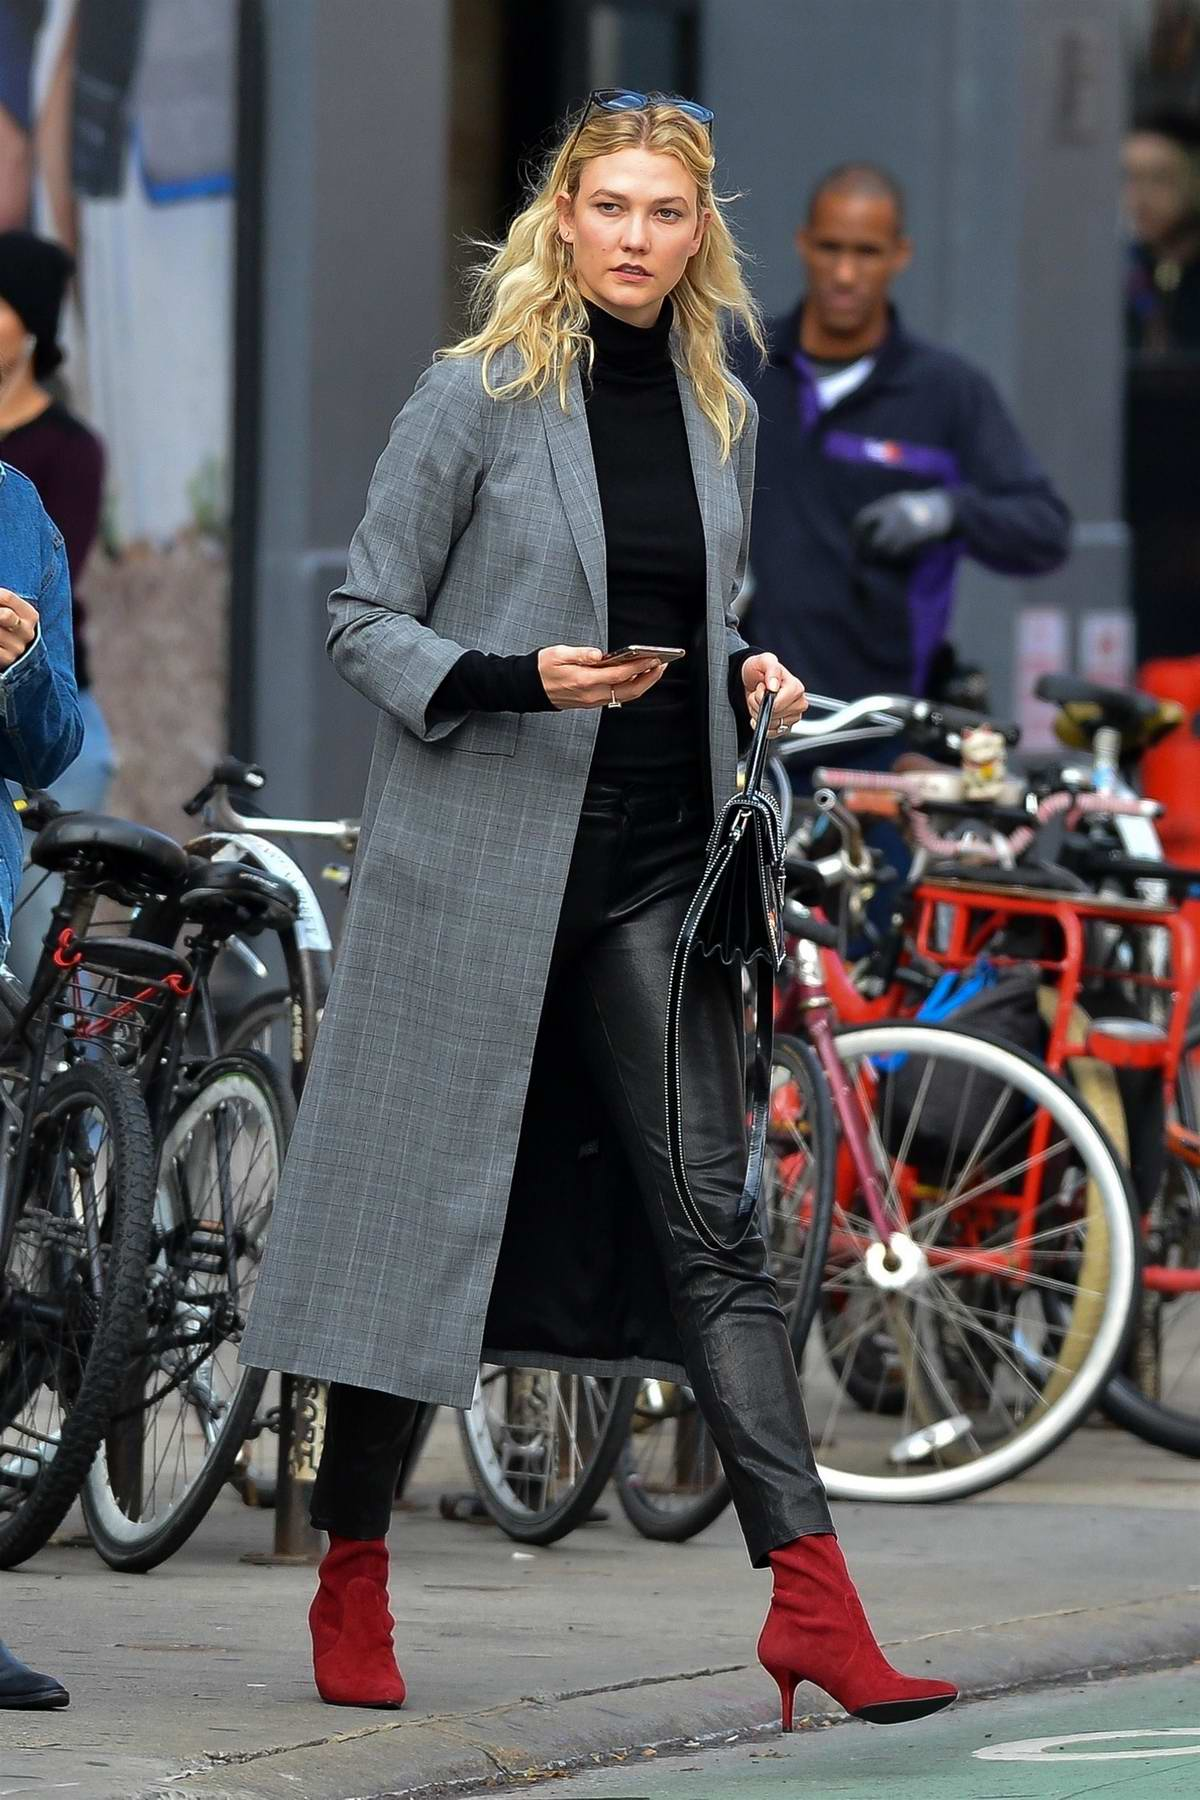 Karlie Kloss looks stylish in a plaid trench coat, black leather pants and red boots as she stepped out for lunch with her family in New York City